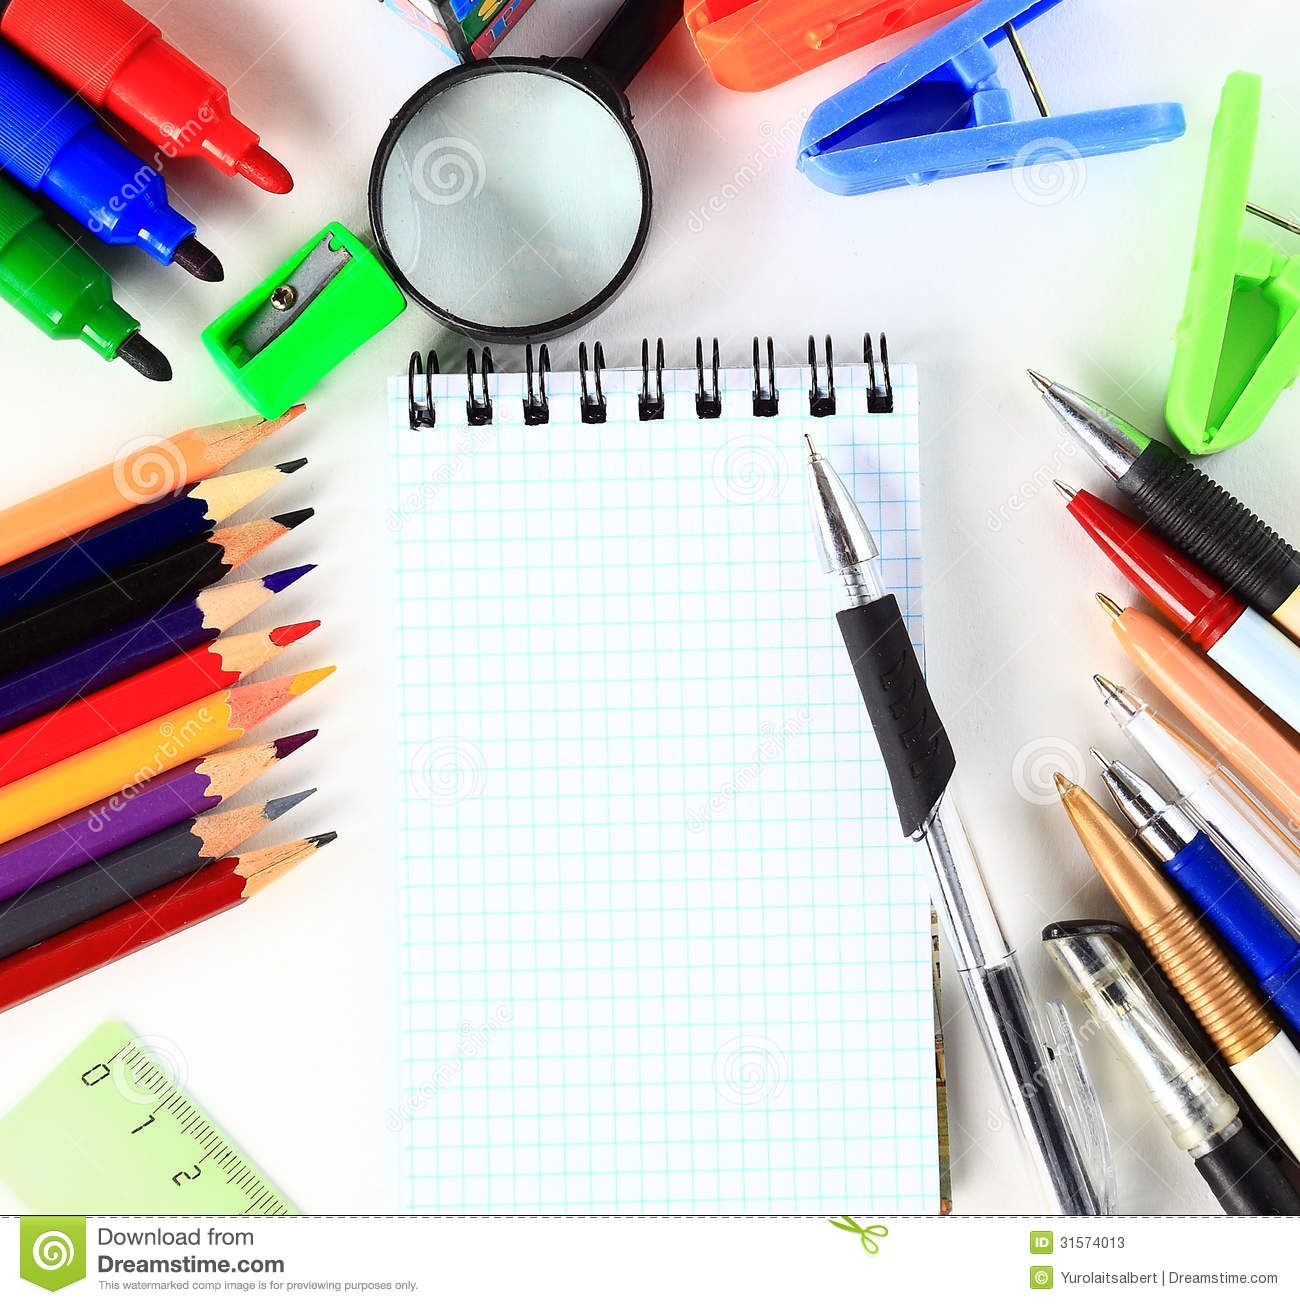 School stationery isolated over white with copyspace.